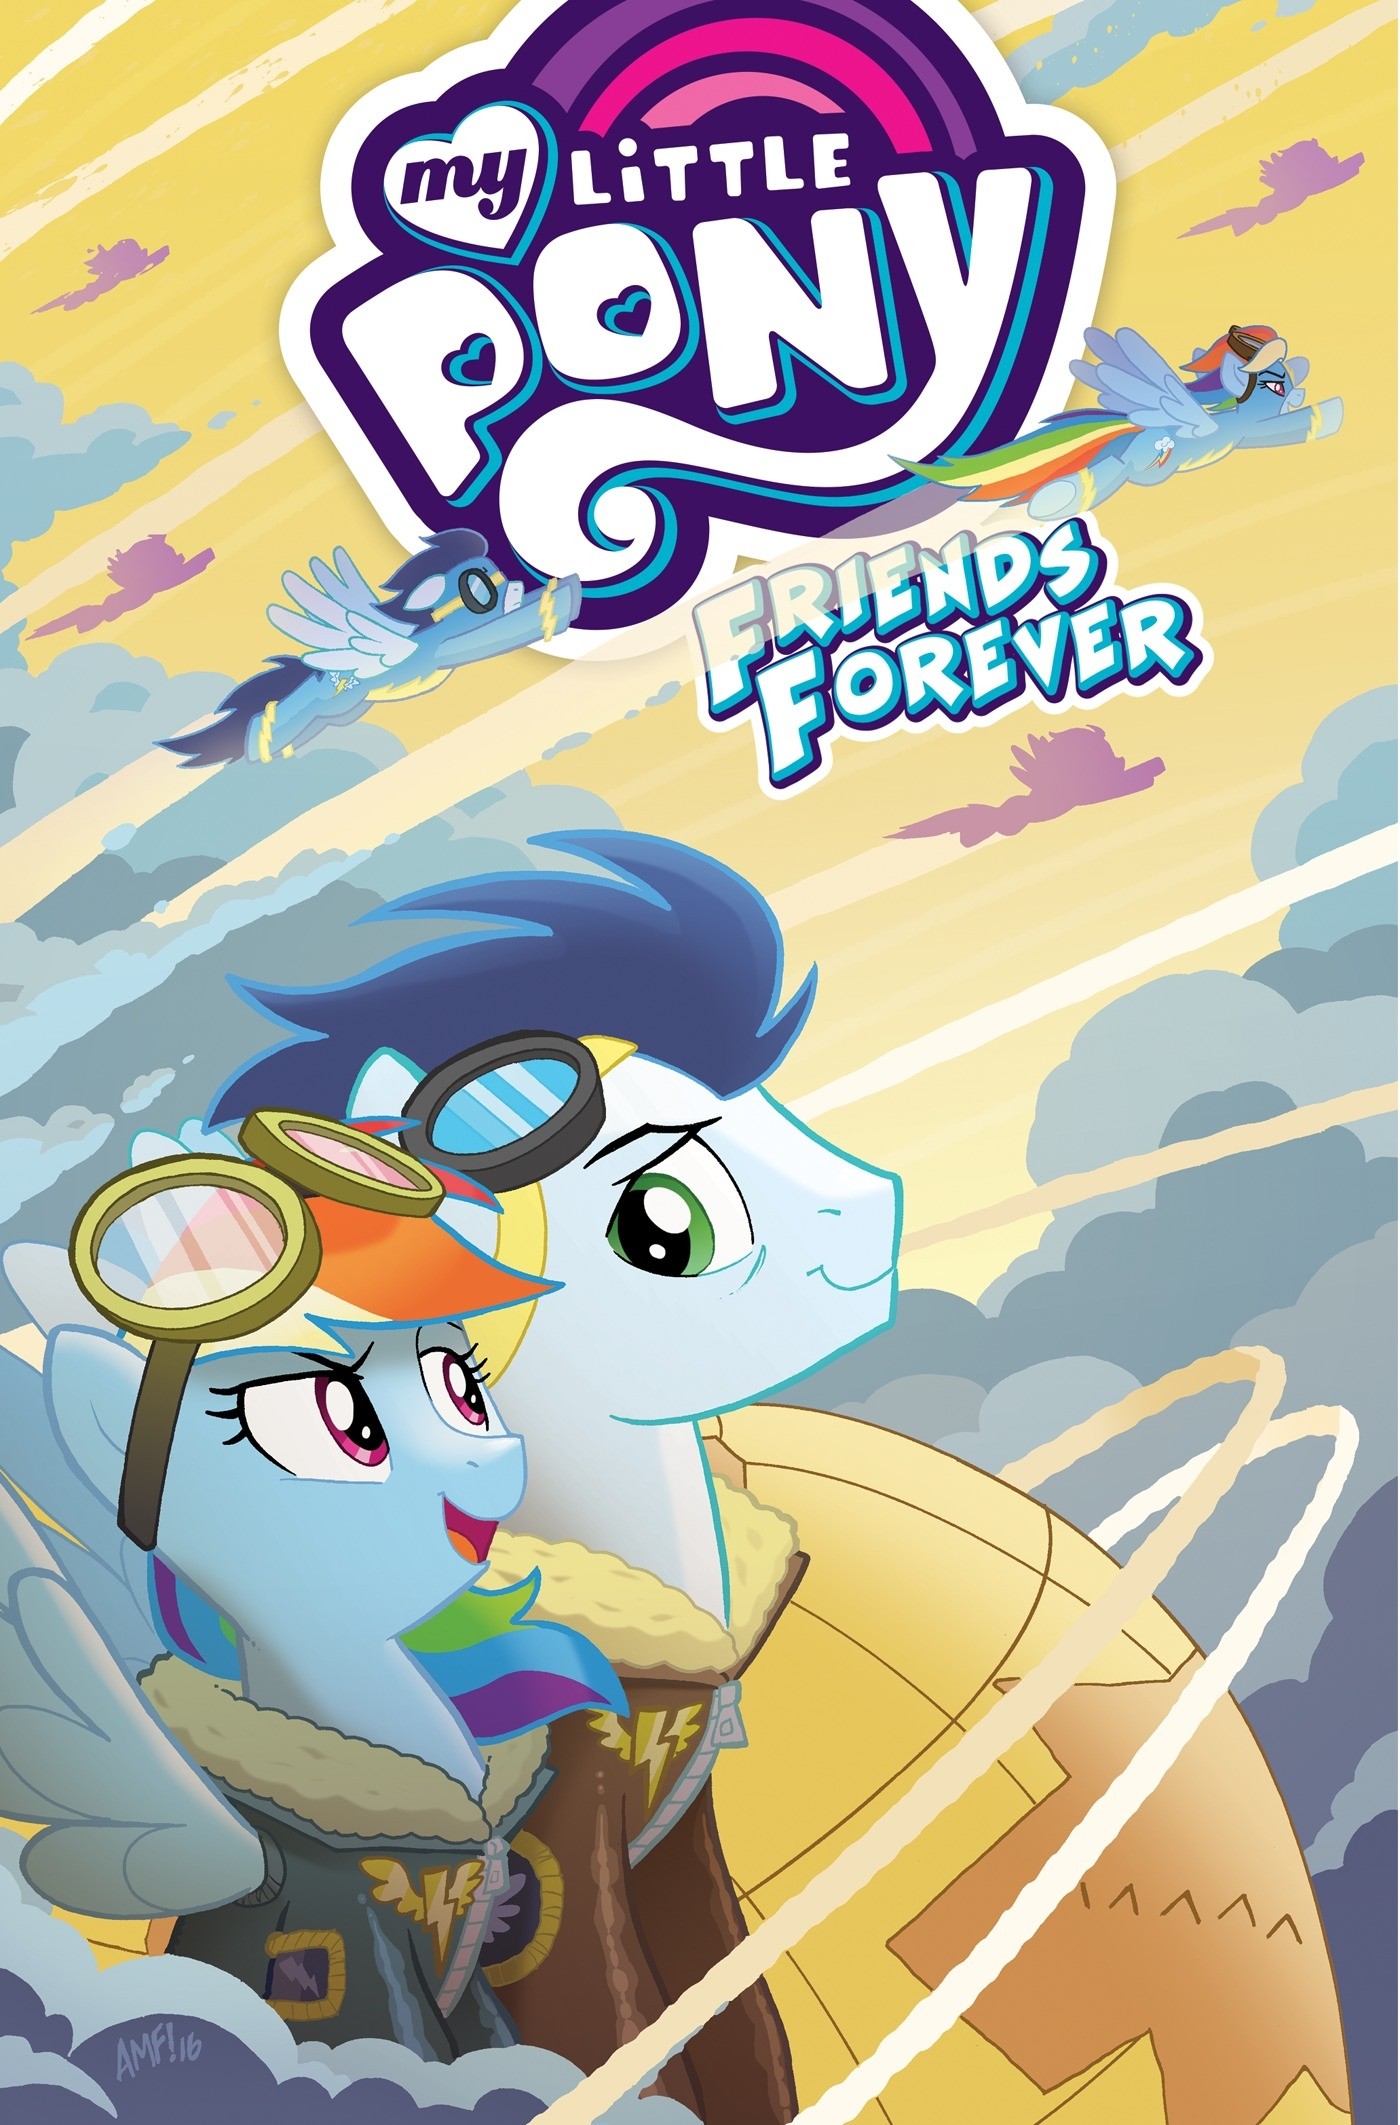 My Little Pony: Friends Forever #28 | IDW Publishing